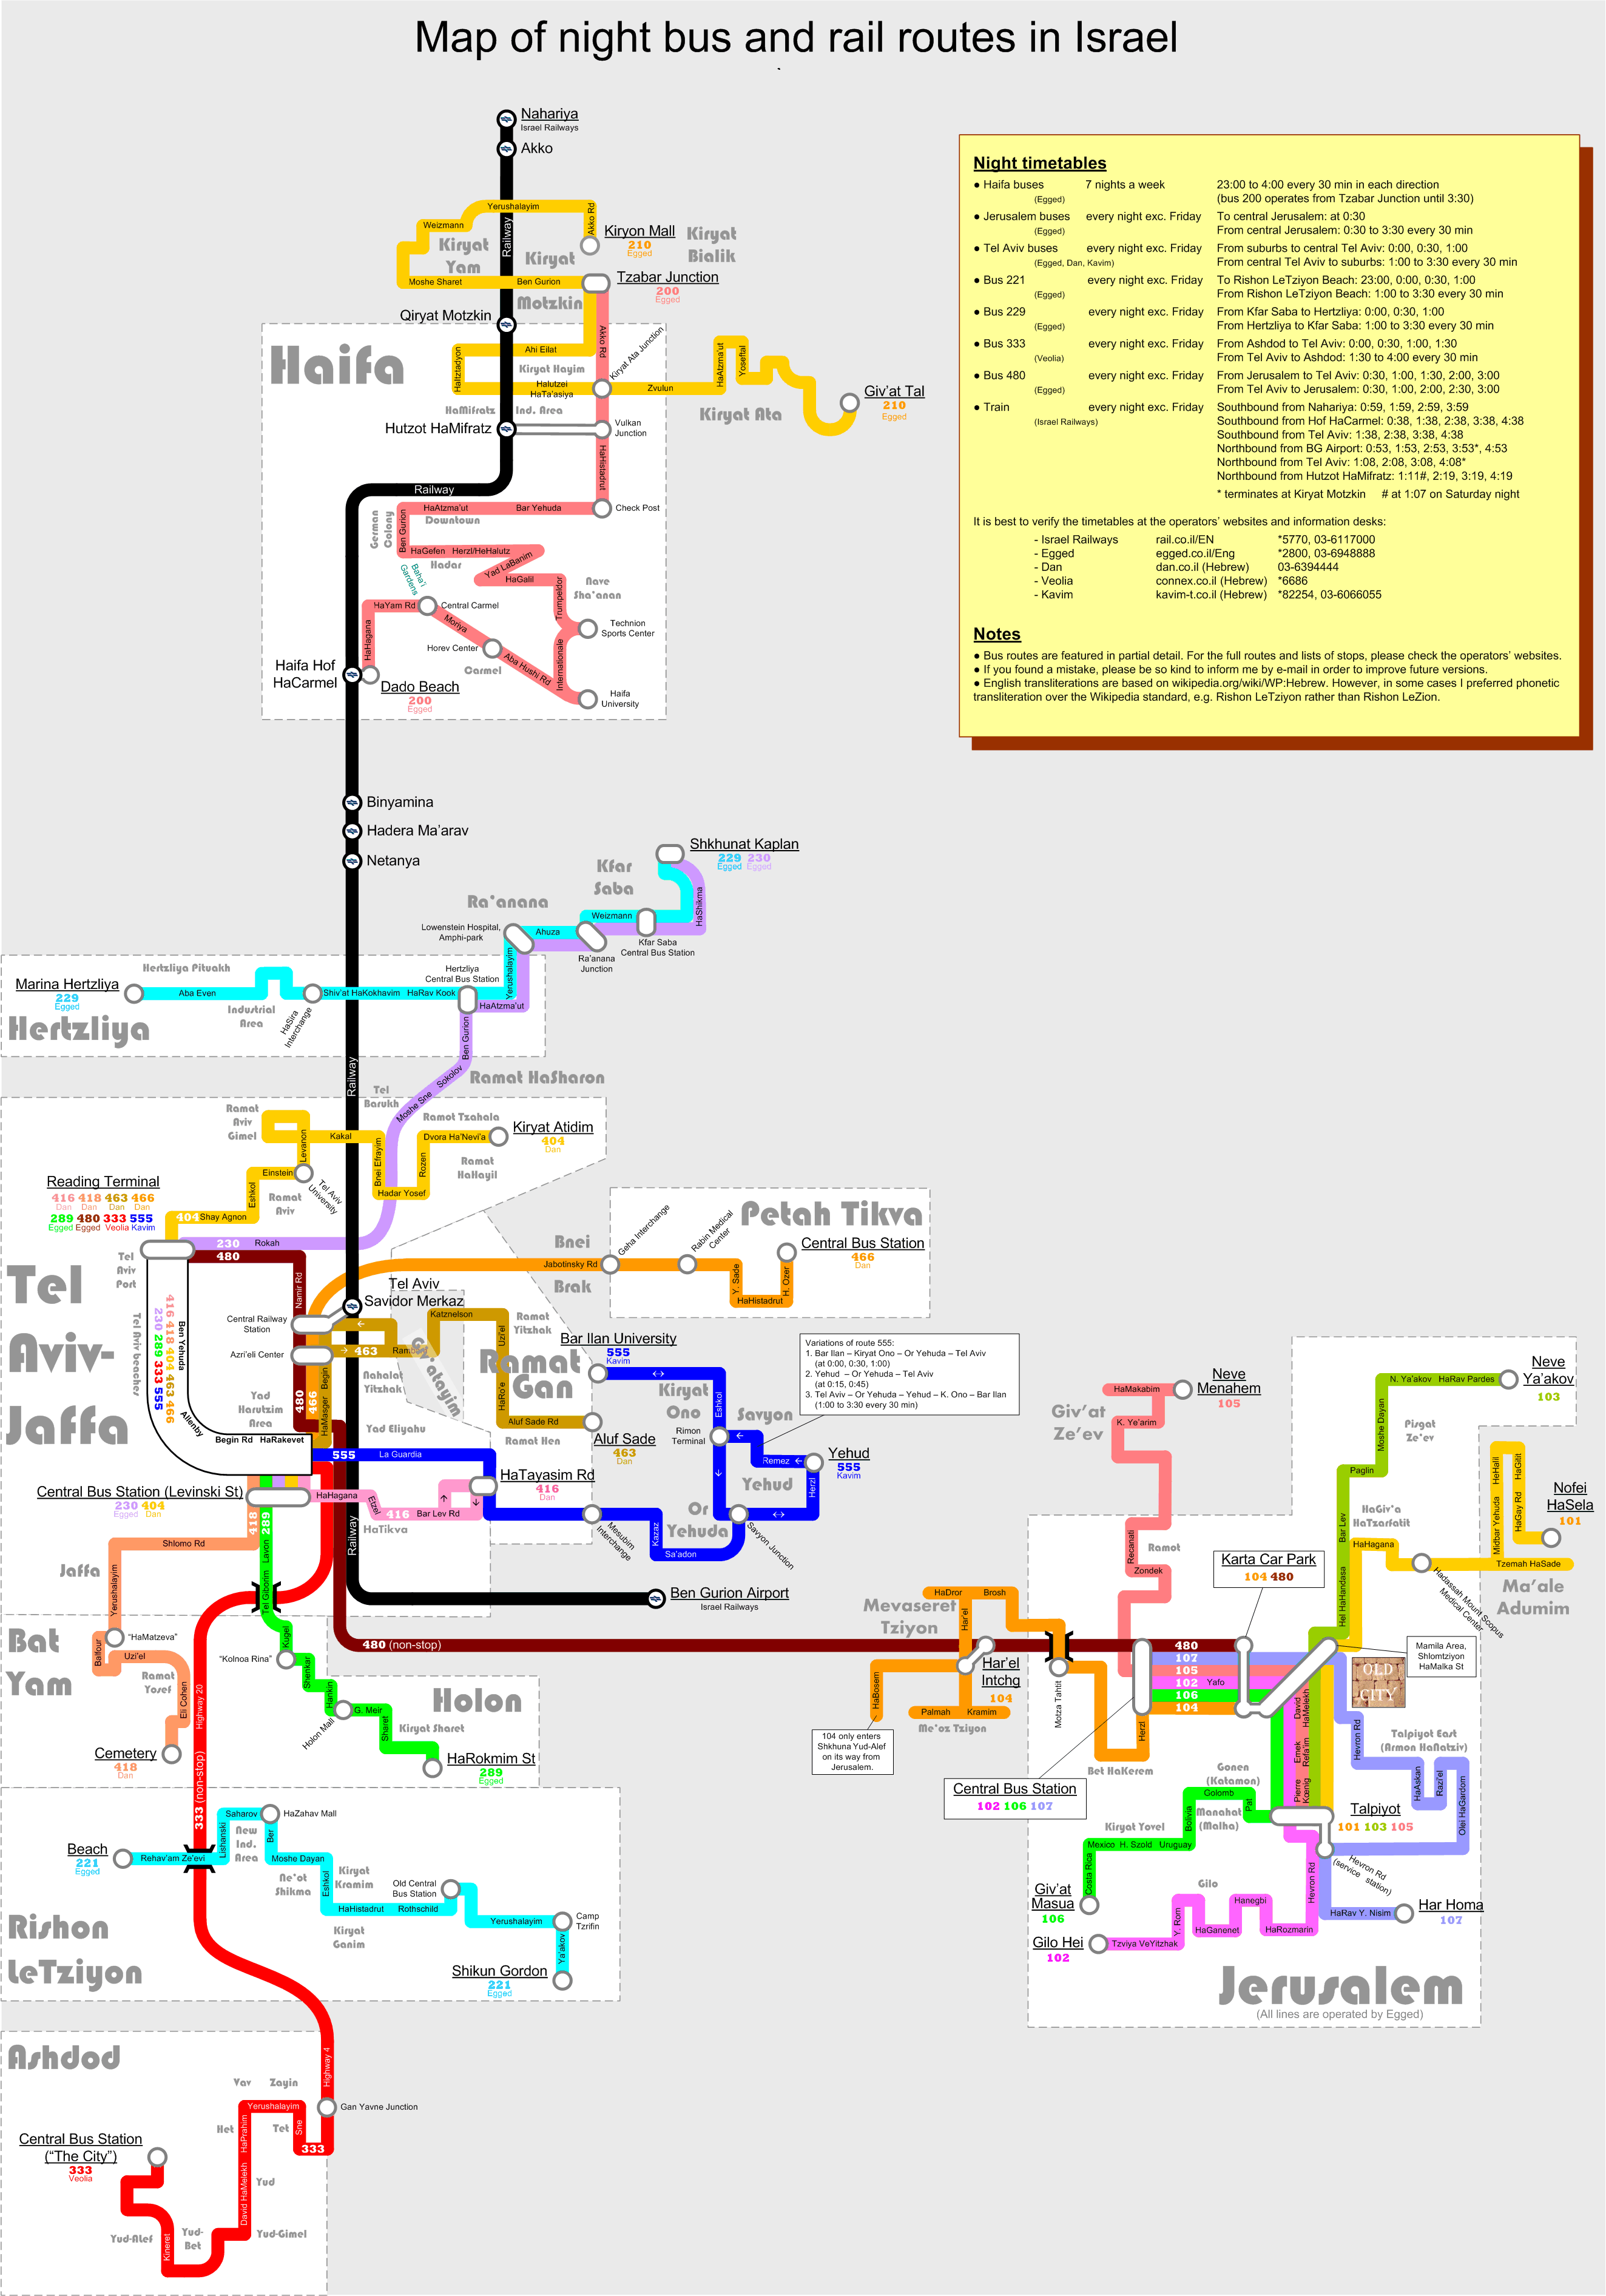 Map of night bus and rail routes in Israel.